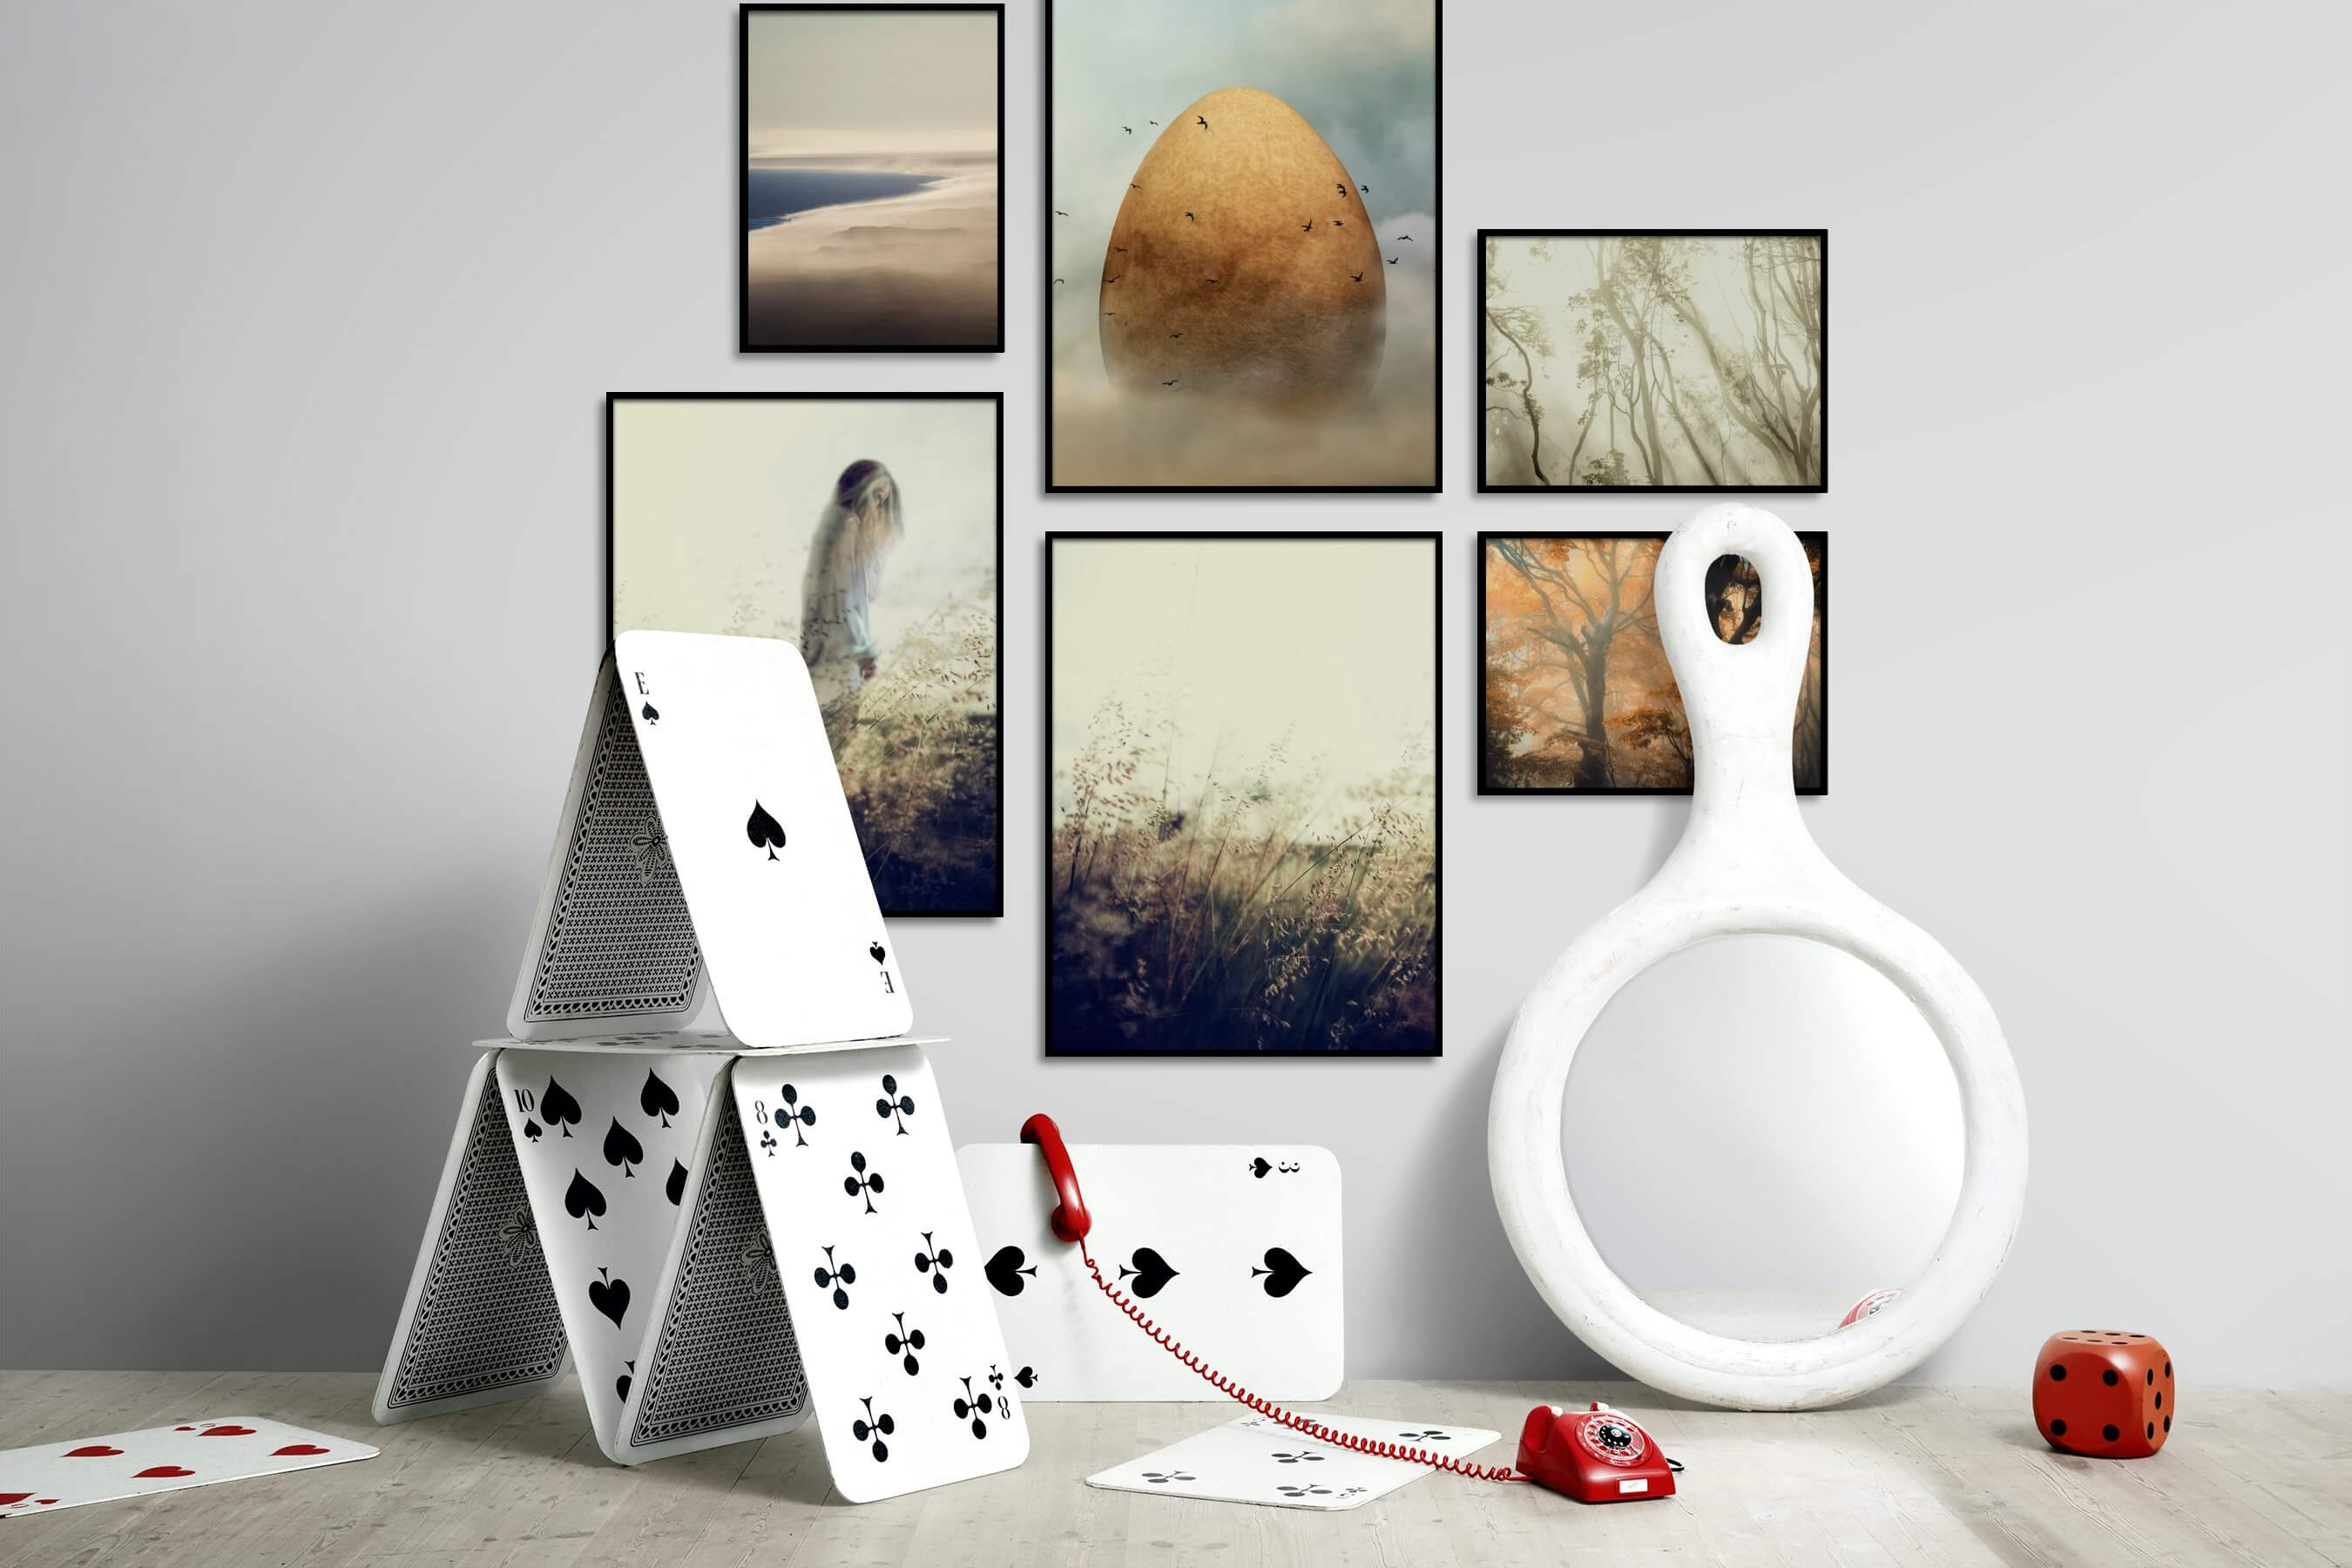 Gallery wall idea with six framed pictures arranged on a wall depicting For the Minimalist, Nature, Artsy, For the Moderate, and Flowers & Plants